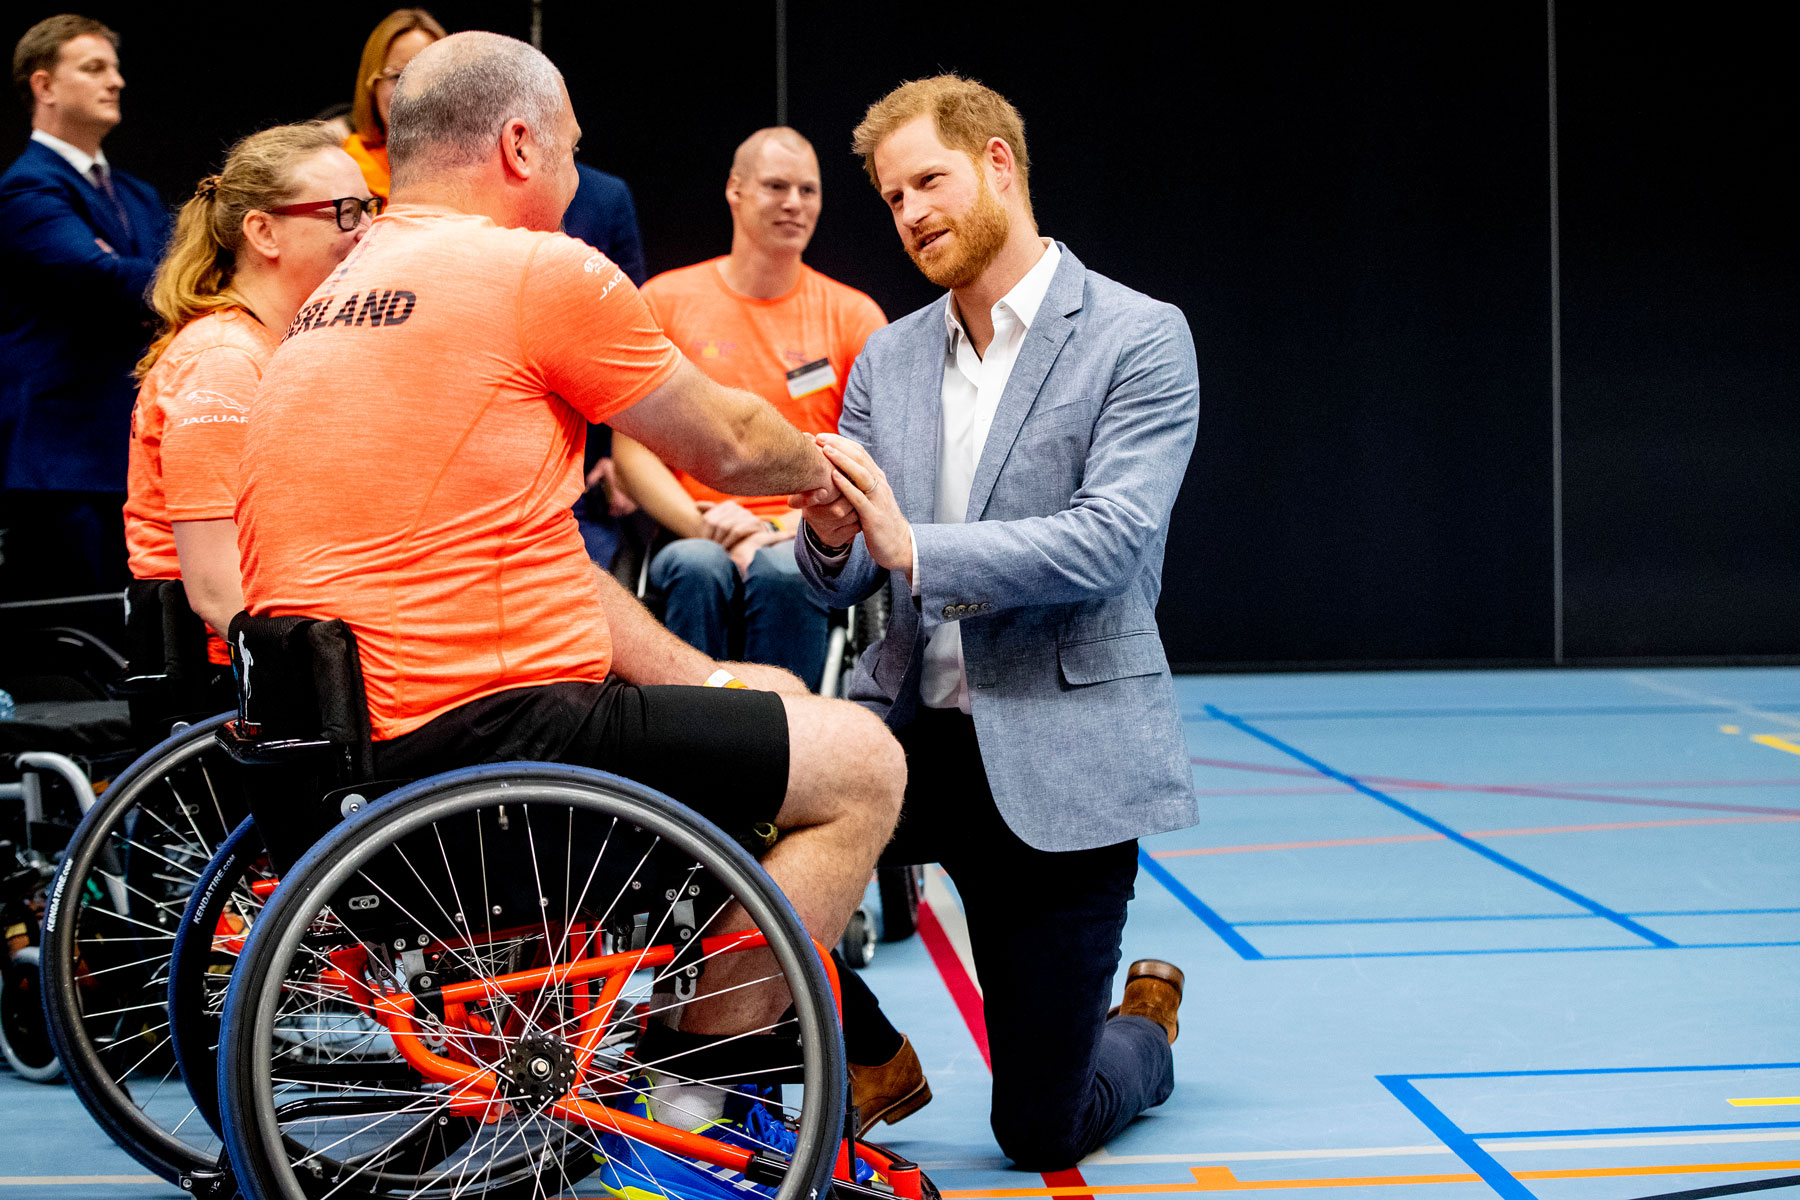 Prince Harry greets athletes during the launch of the Invictus Games